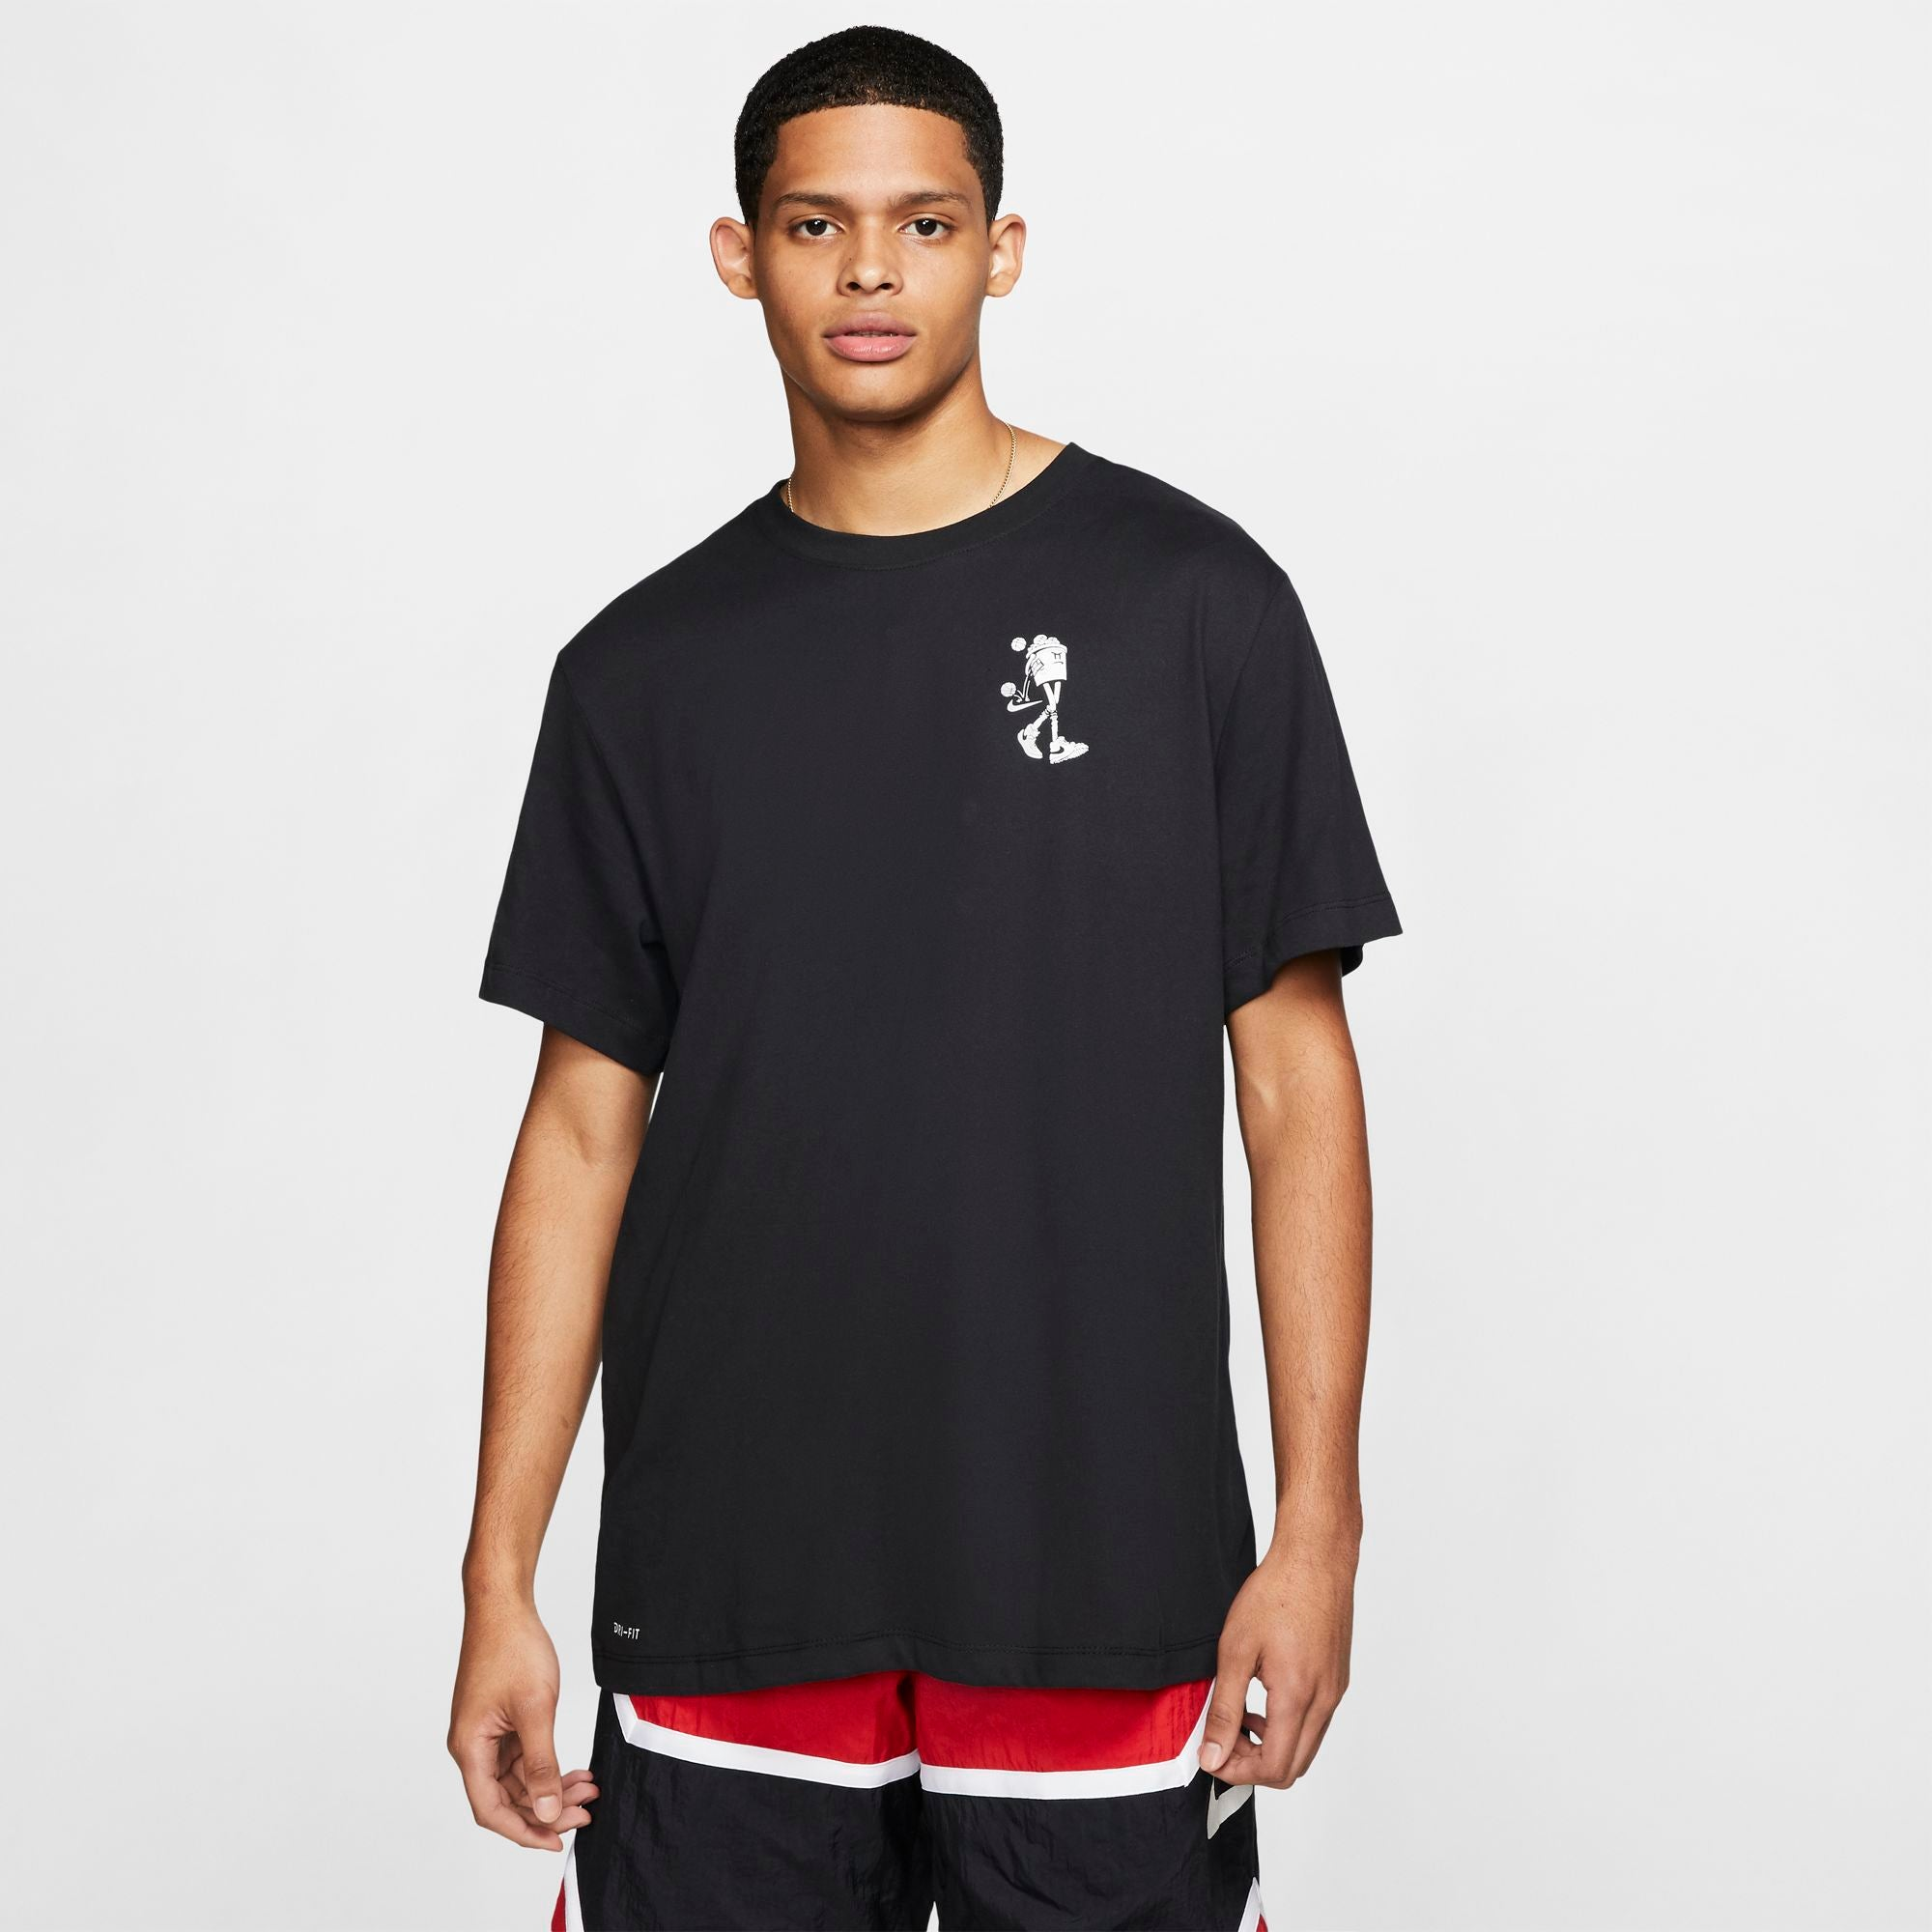 Nike Basketball Dri-fit Just Buckets Tee - Black